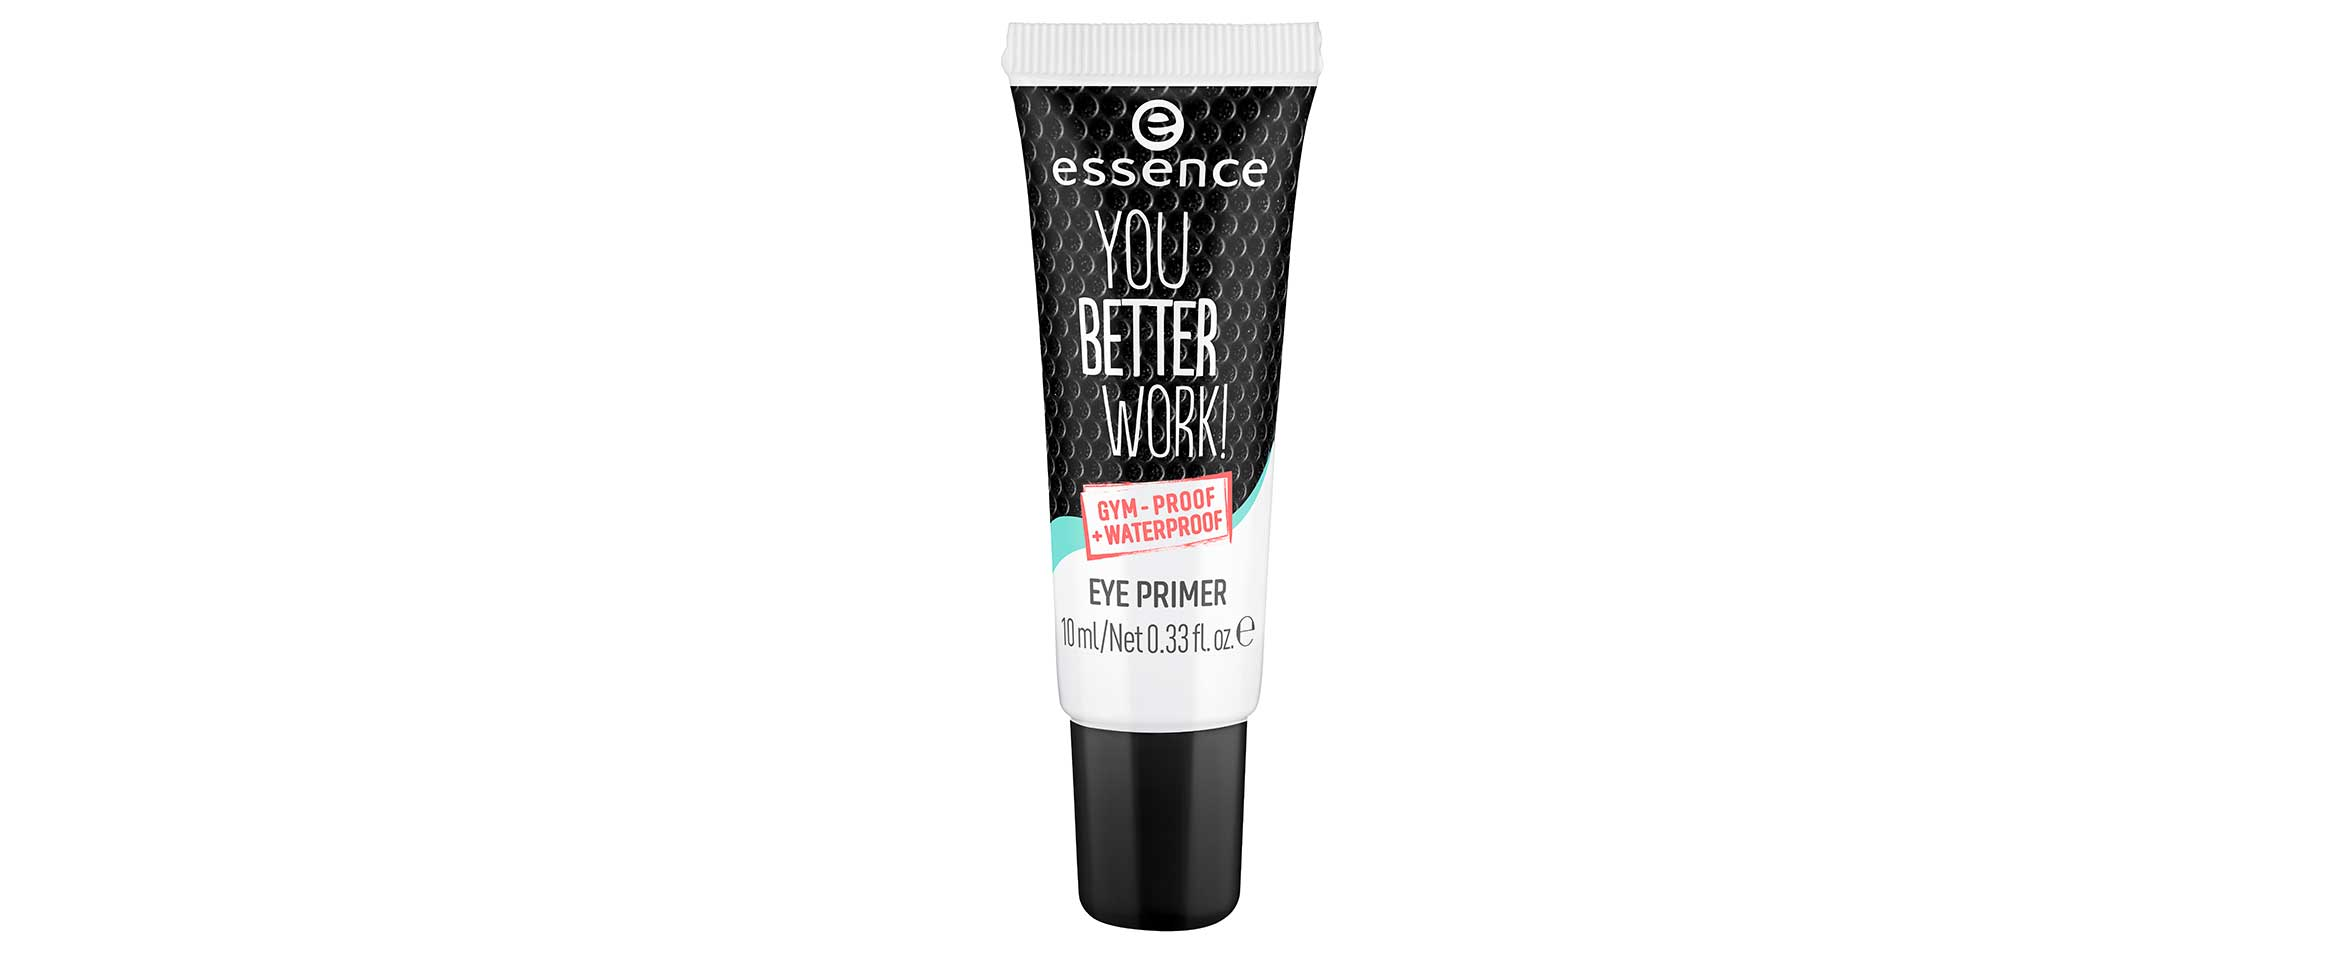 essence-you-better-work-eye-primer-collectie2019